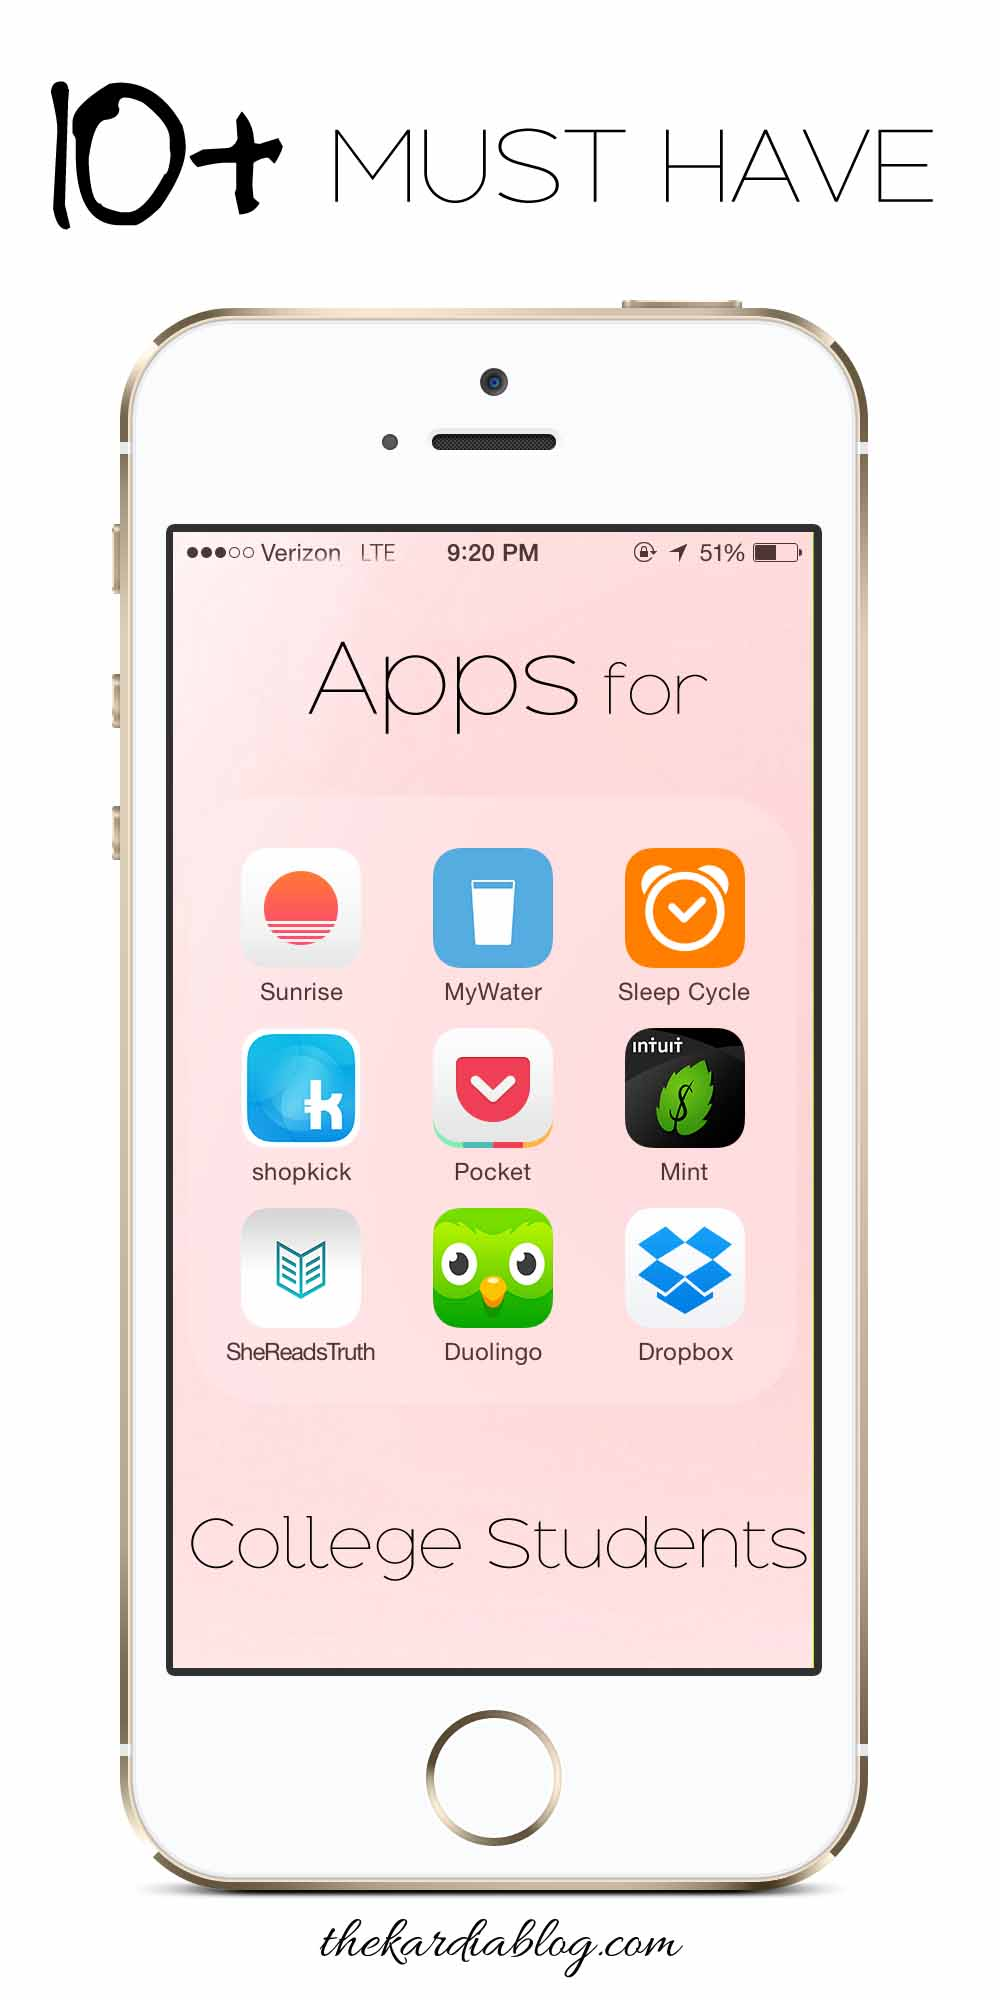 budget apps for college students